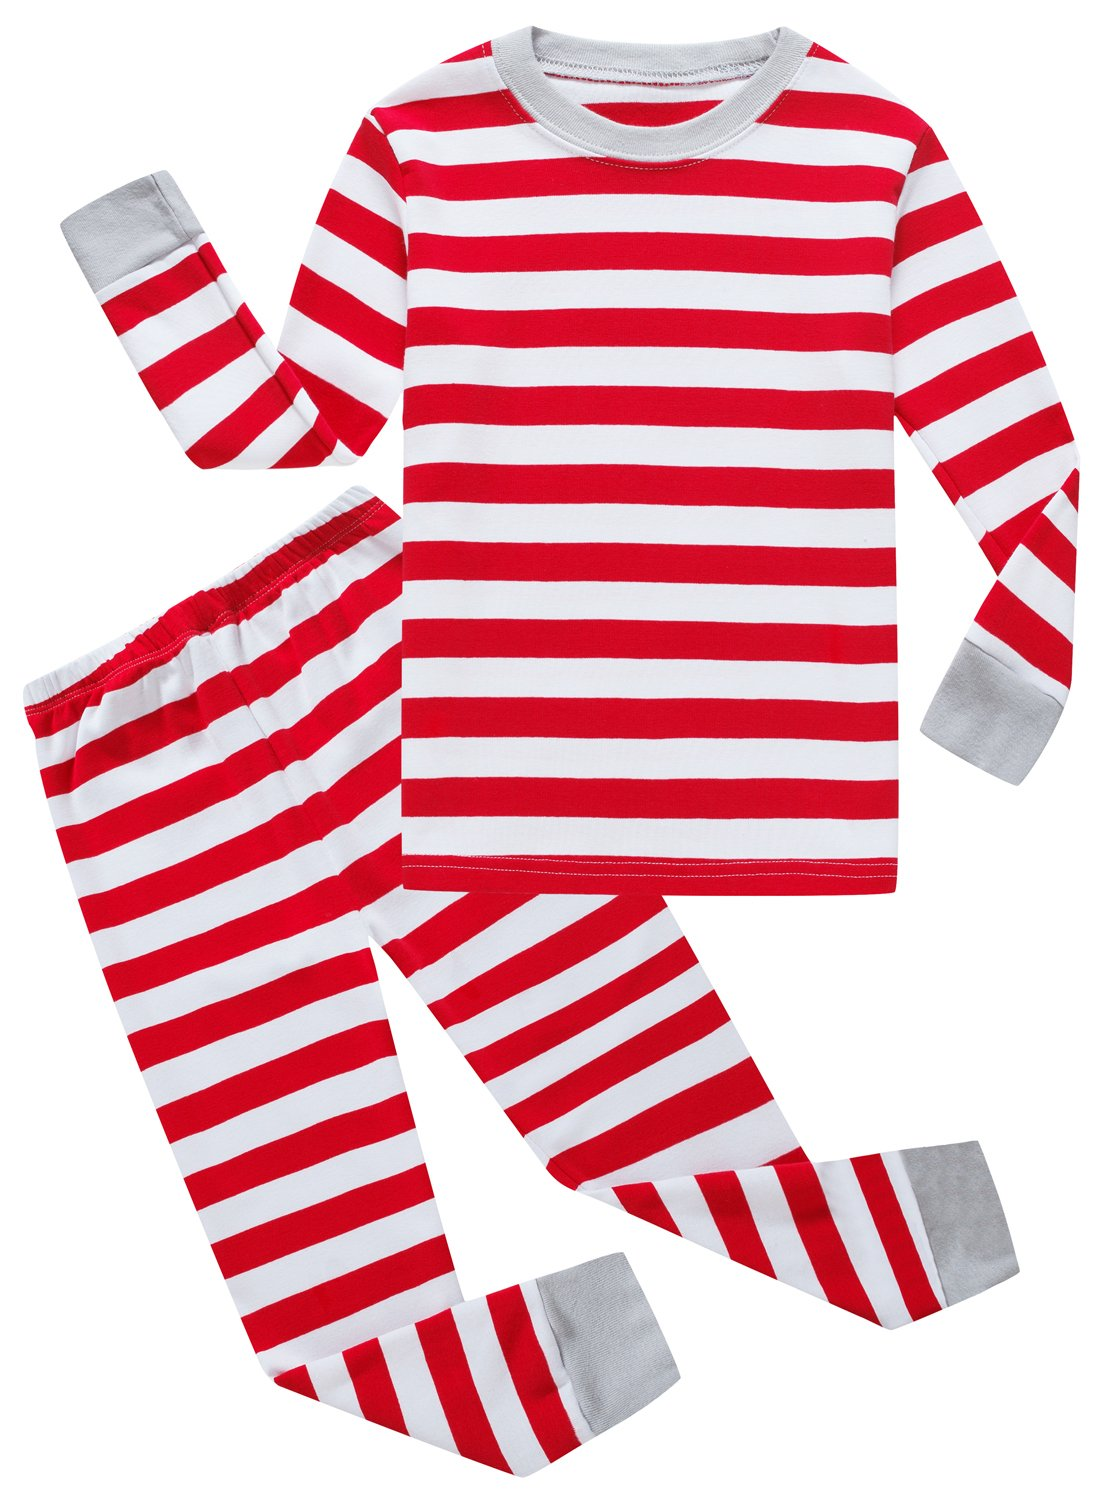 Family Feeling Striped Little Boys Girls Christmas 2 Piece Pajamas Set 100% Cotton Pjs Red Size 5